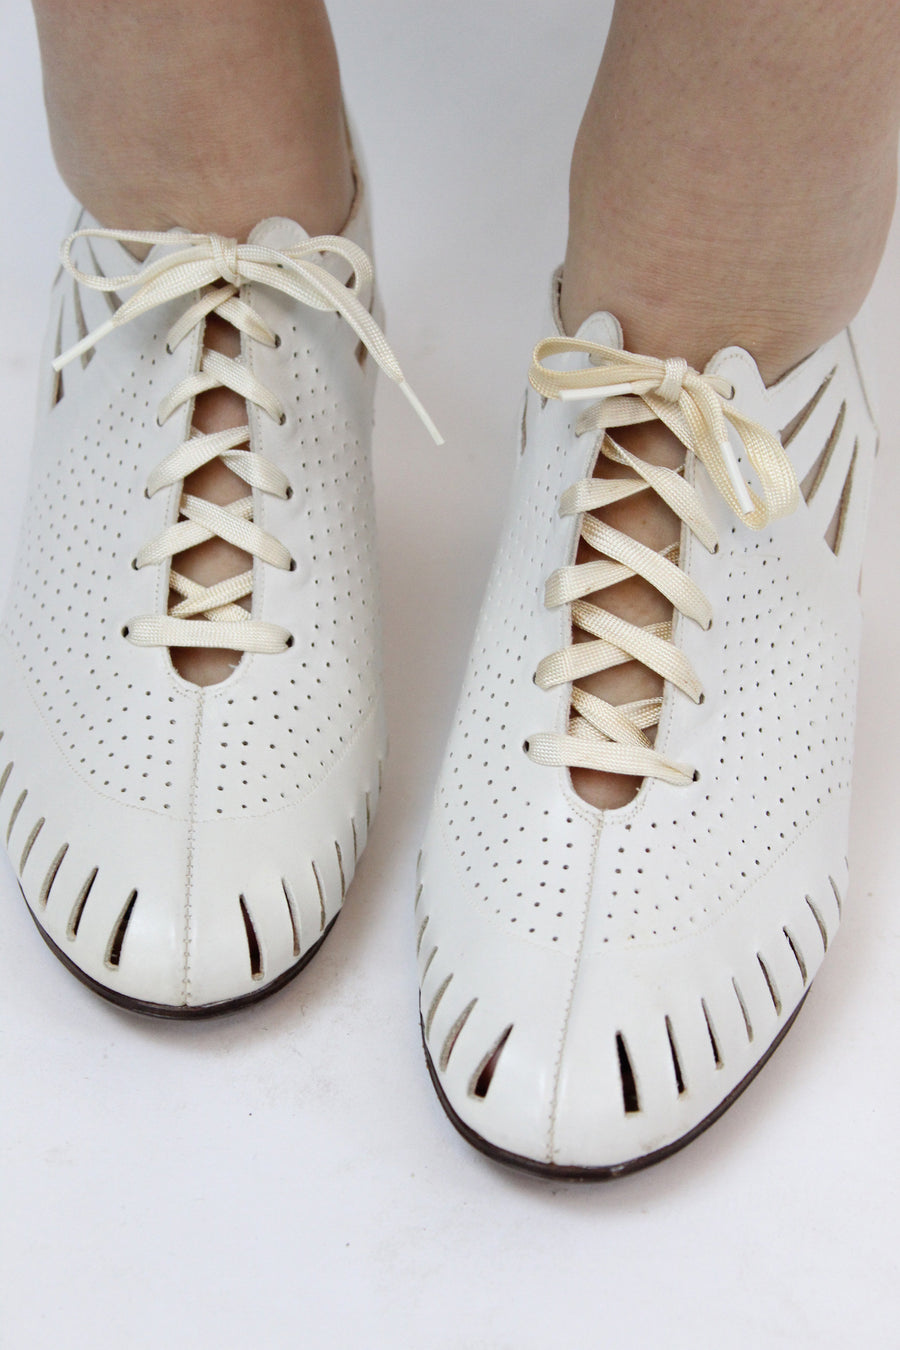 RESERVED FOR MARIE 1930s Heeled Oxfords | Cutout Lace Up Shoes | Size 8.5